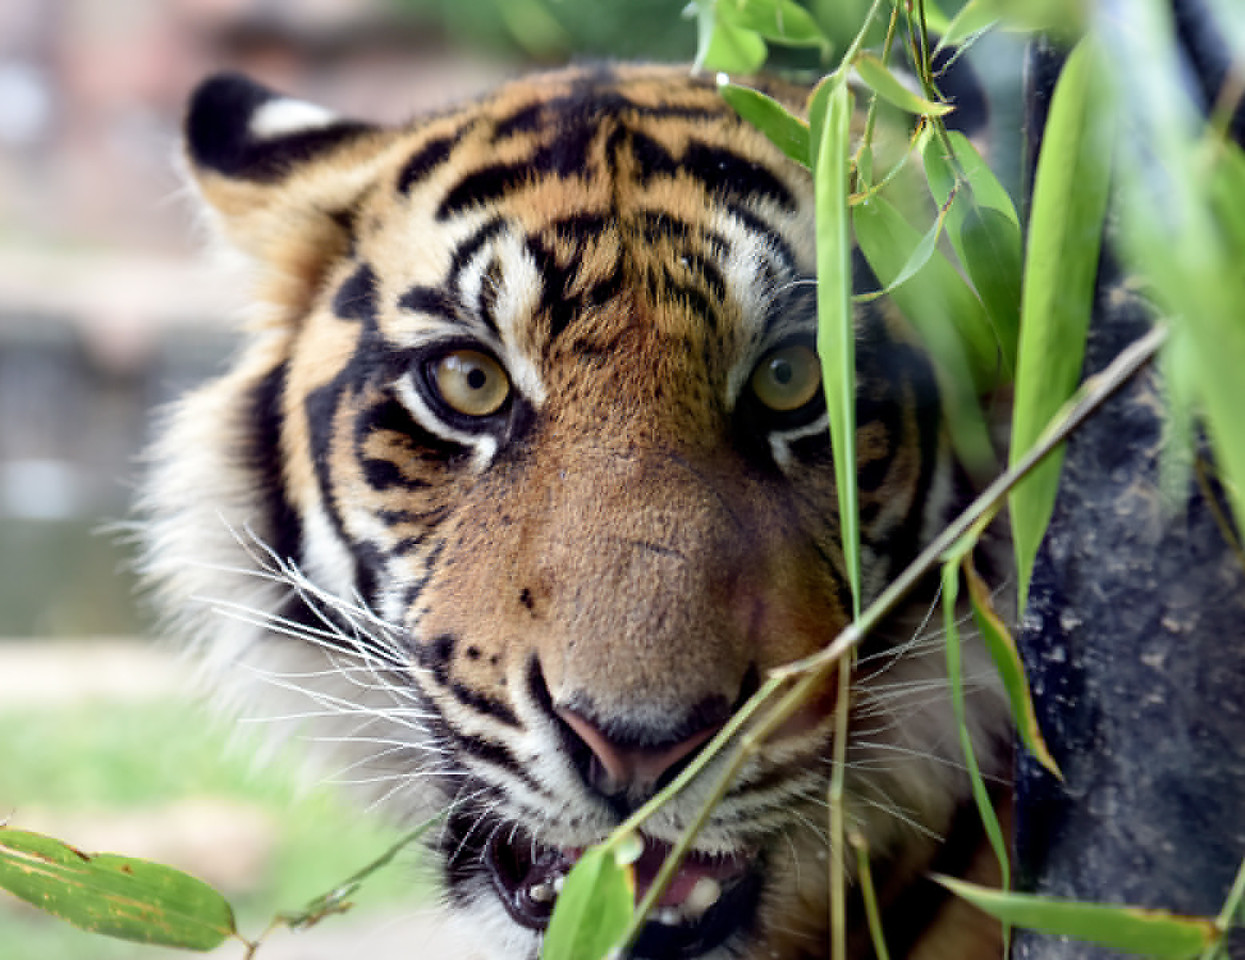 Eko is one of the Sumatran Tigers at the Jackson Zoo.